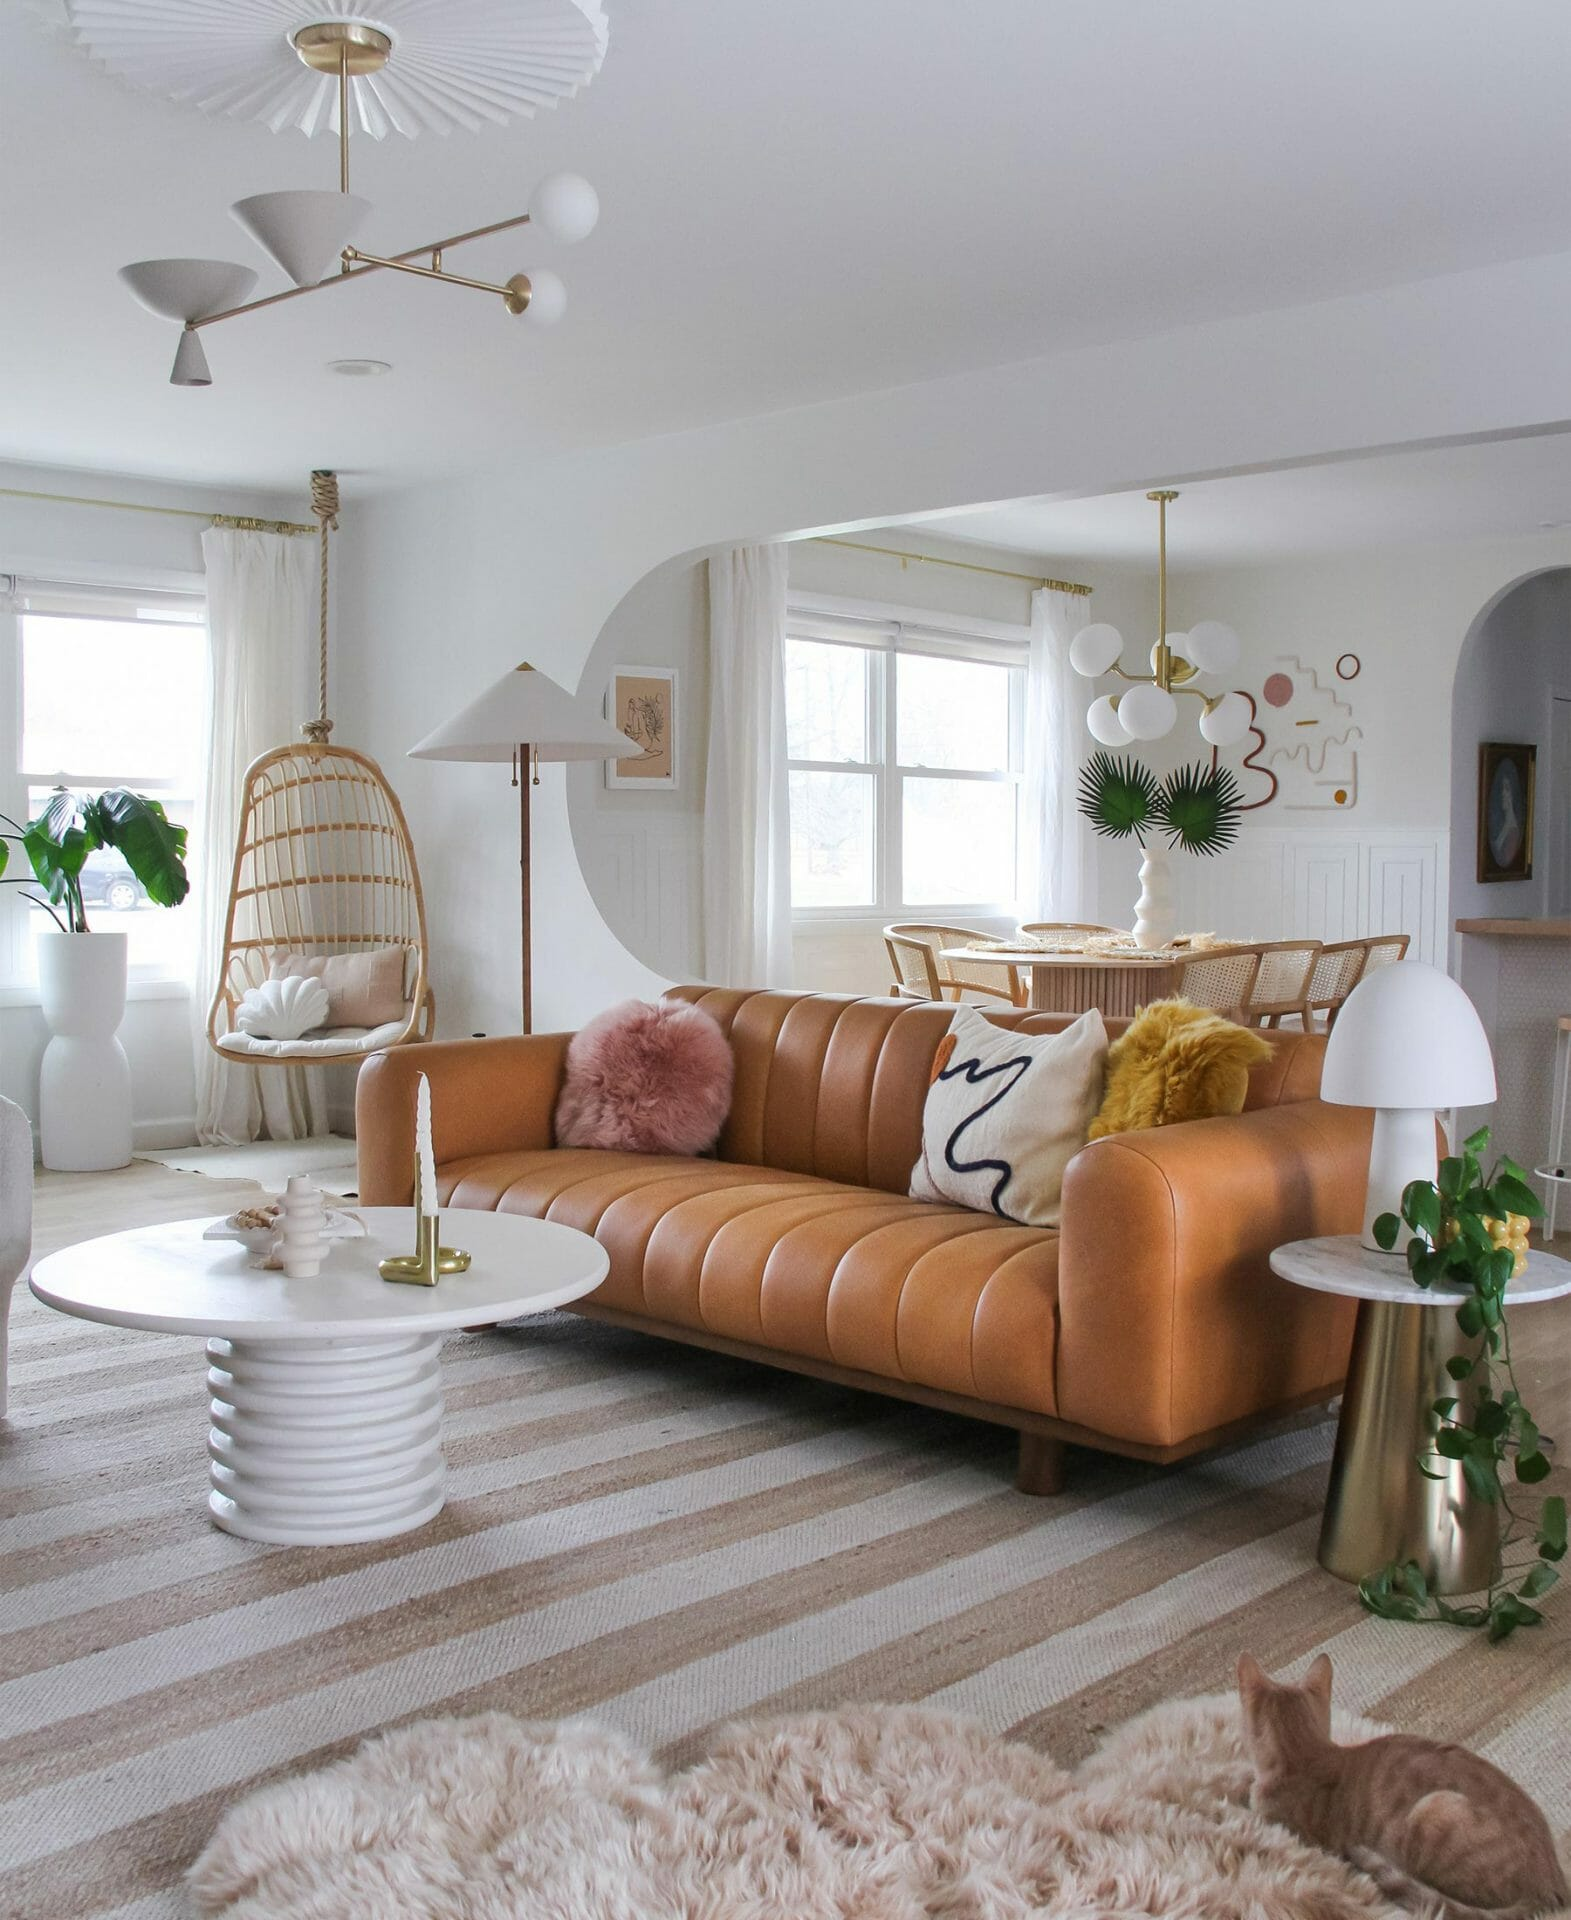 Article's Texada Sofa is featured in Brit Arnesen's living room.